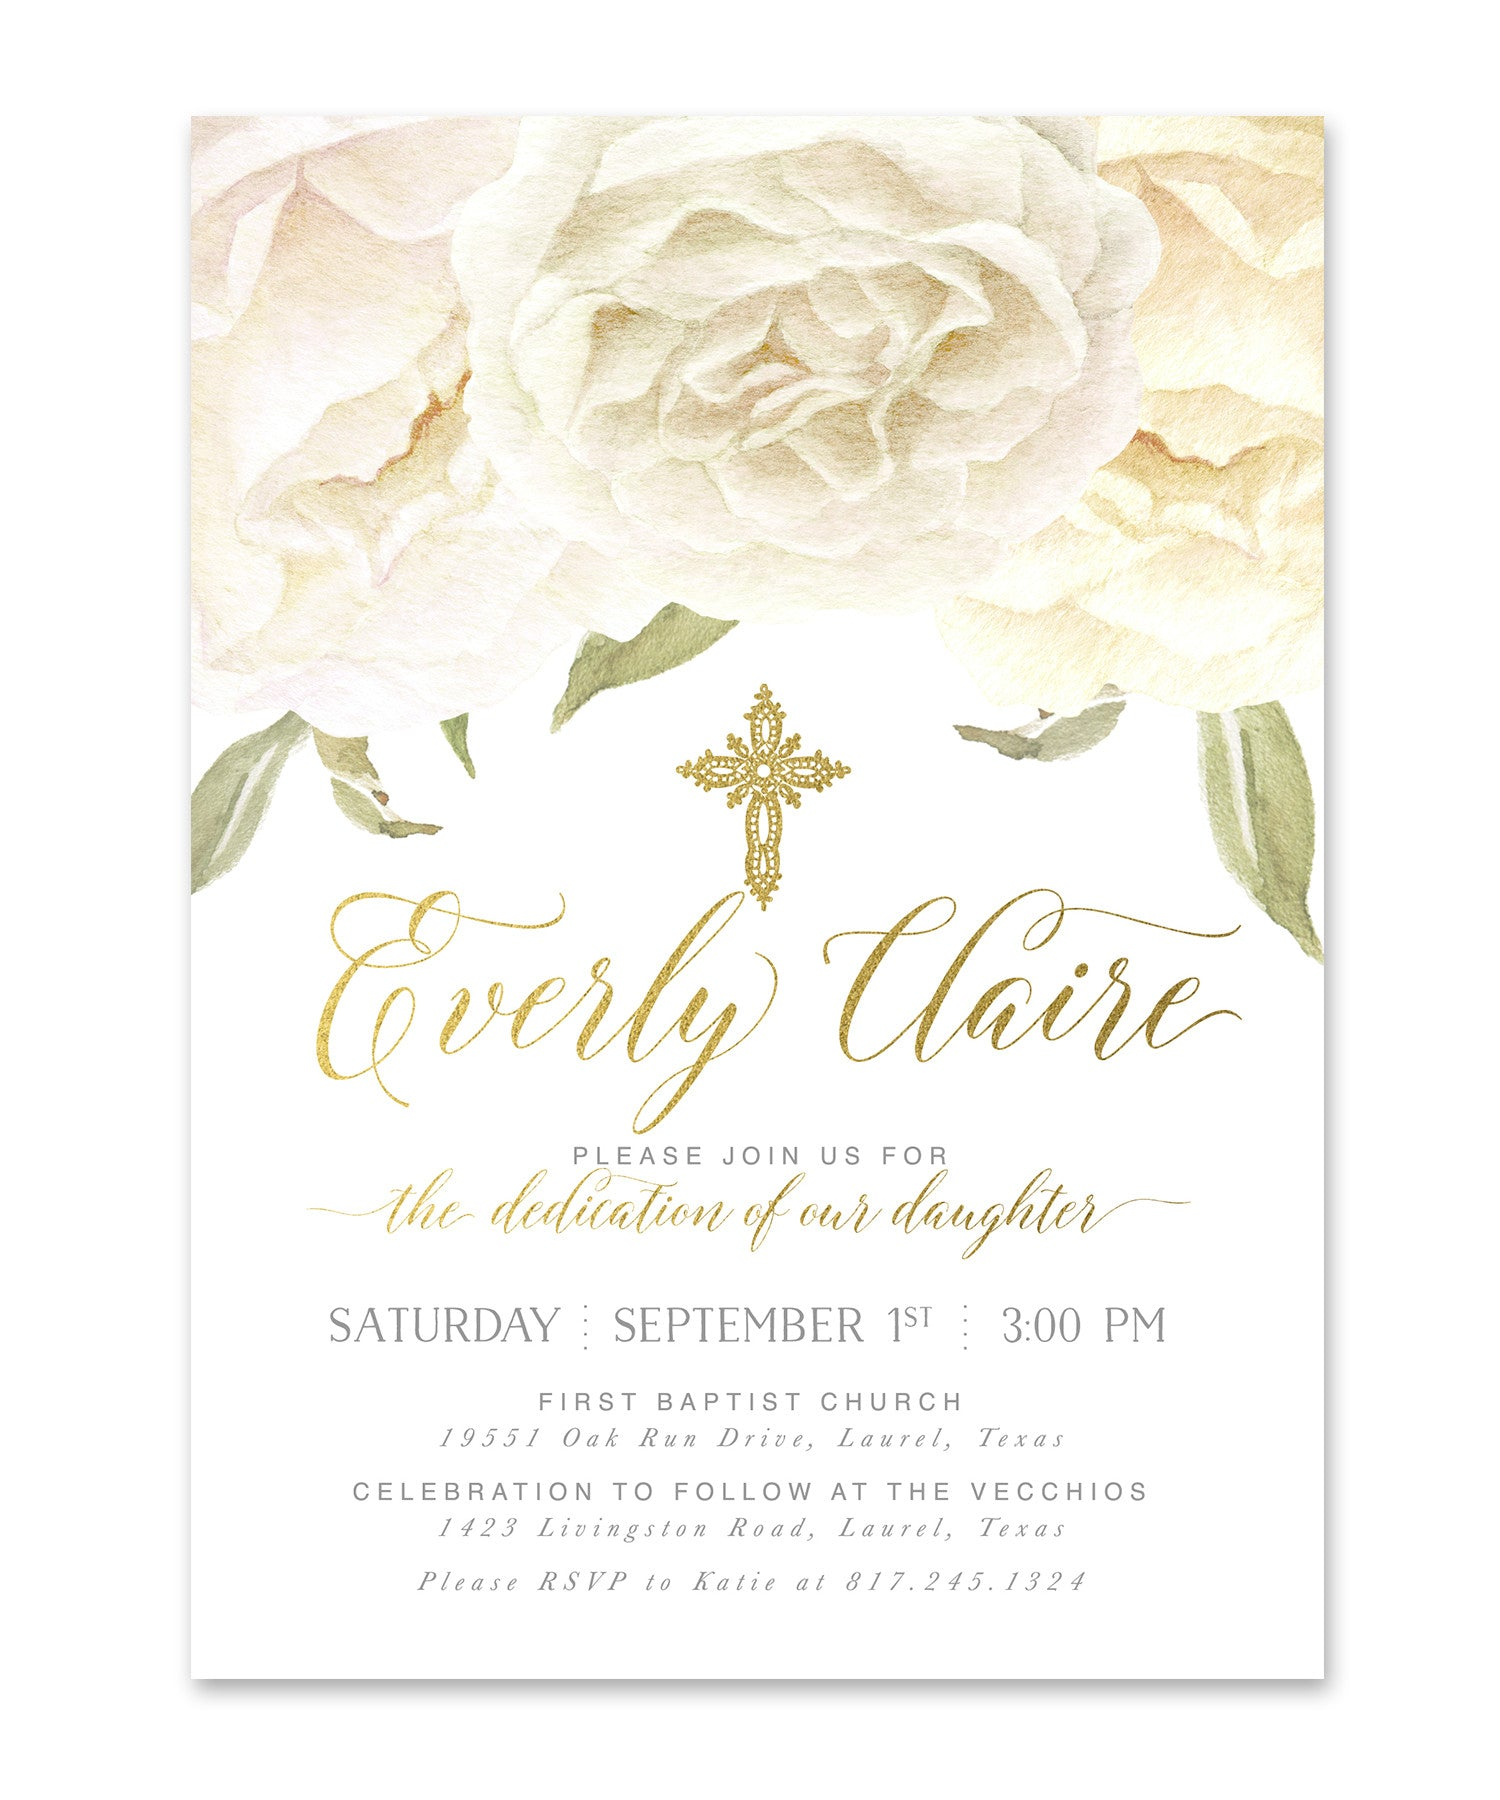 everly baby girl boy or twins dedication invitation white roses